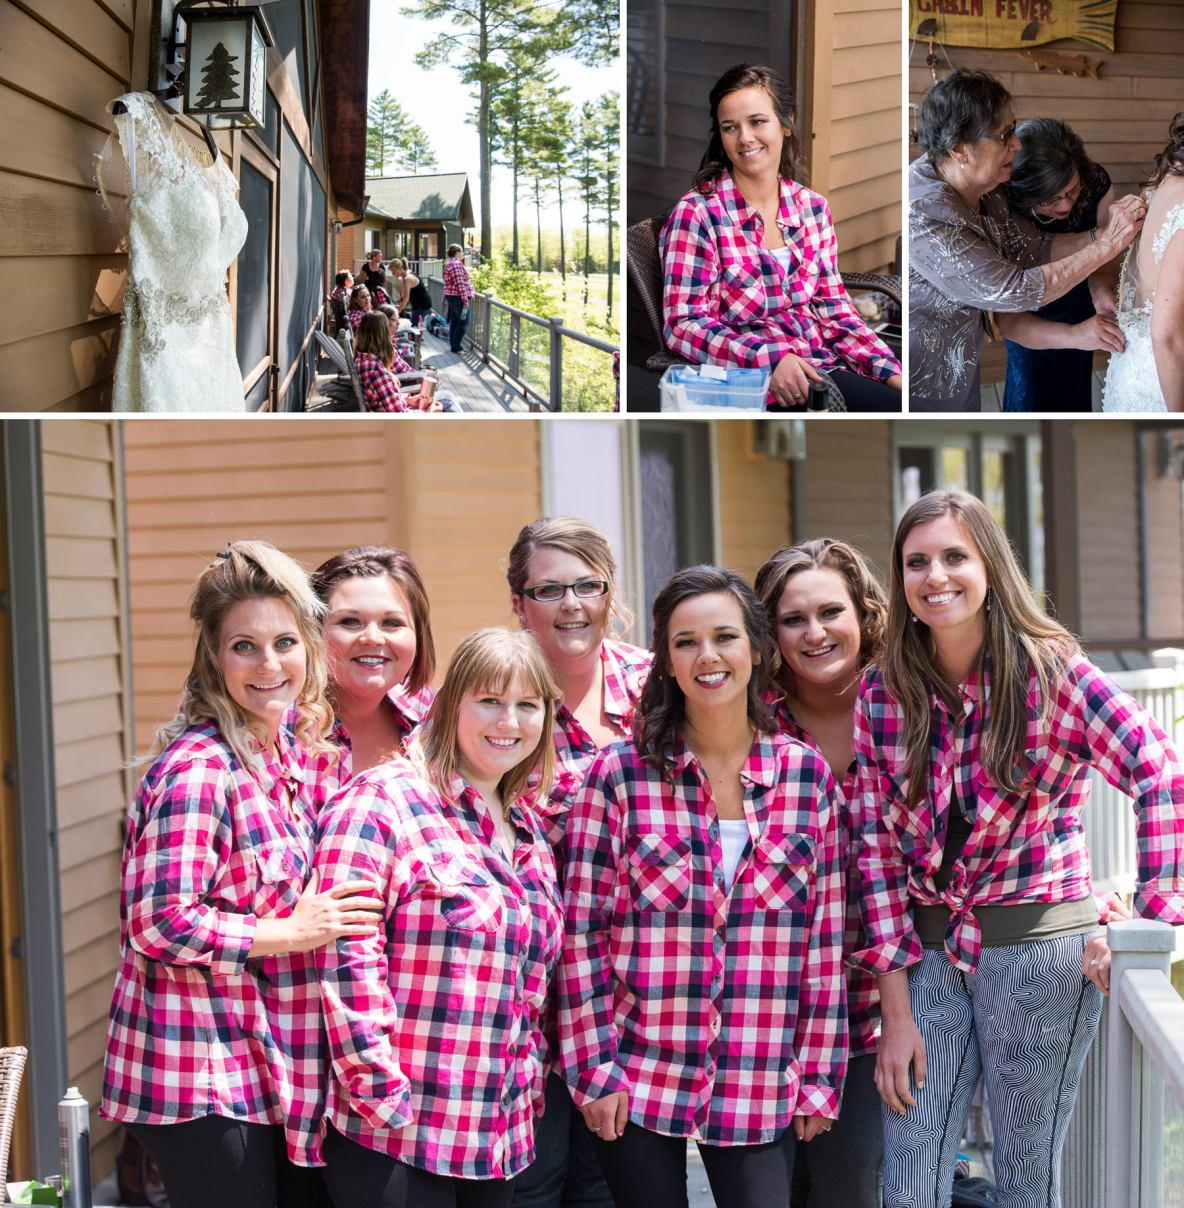 Bride and bridesmaids in matching pink flannels